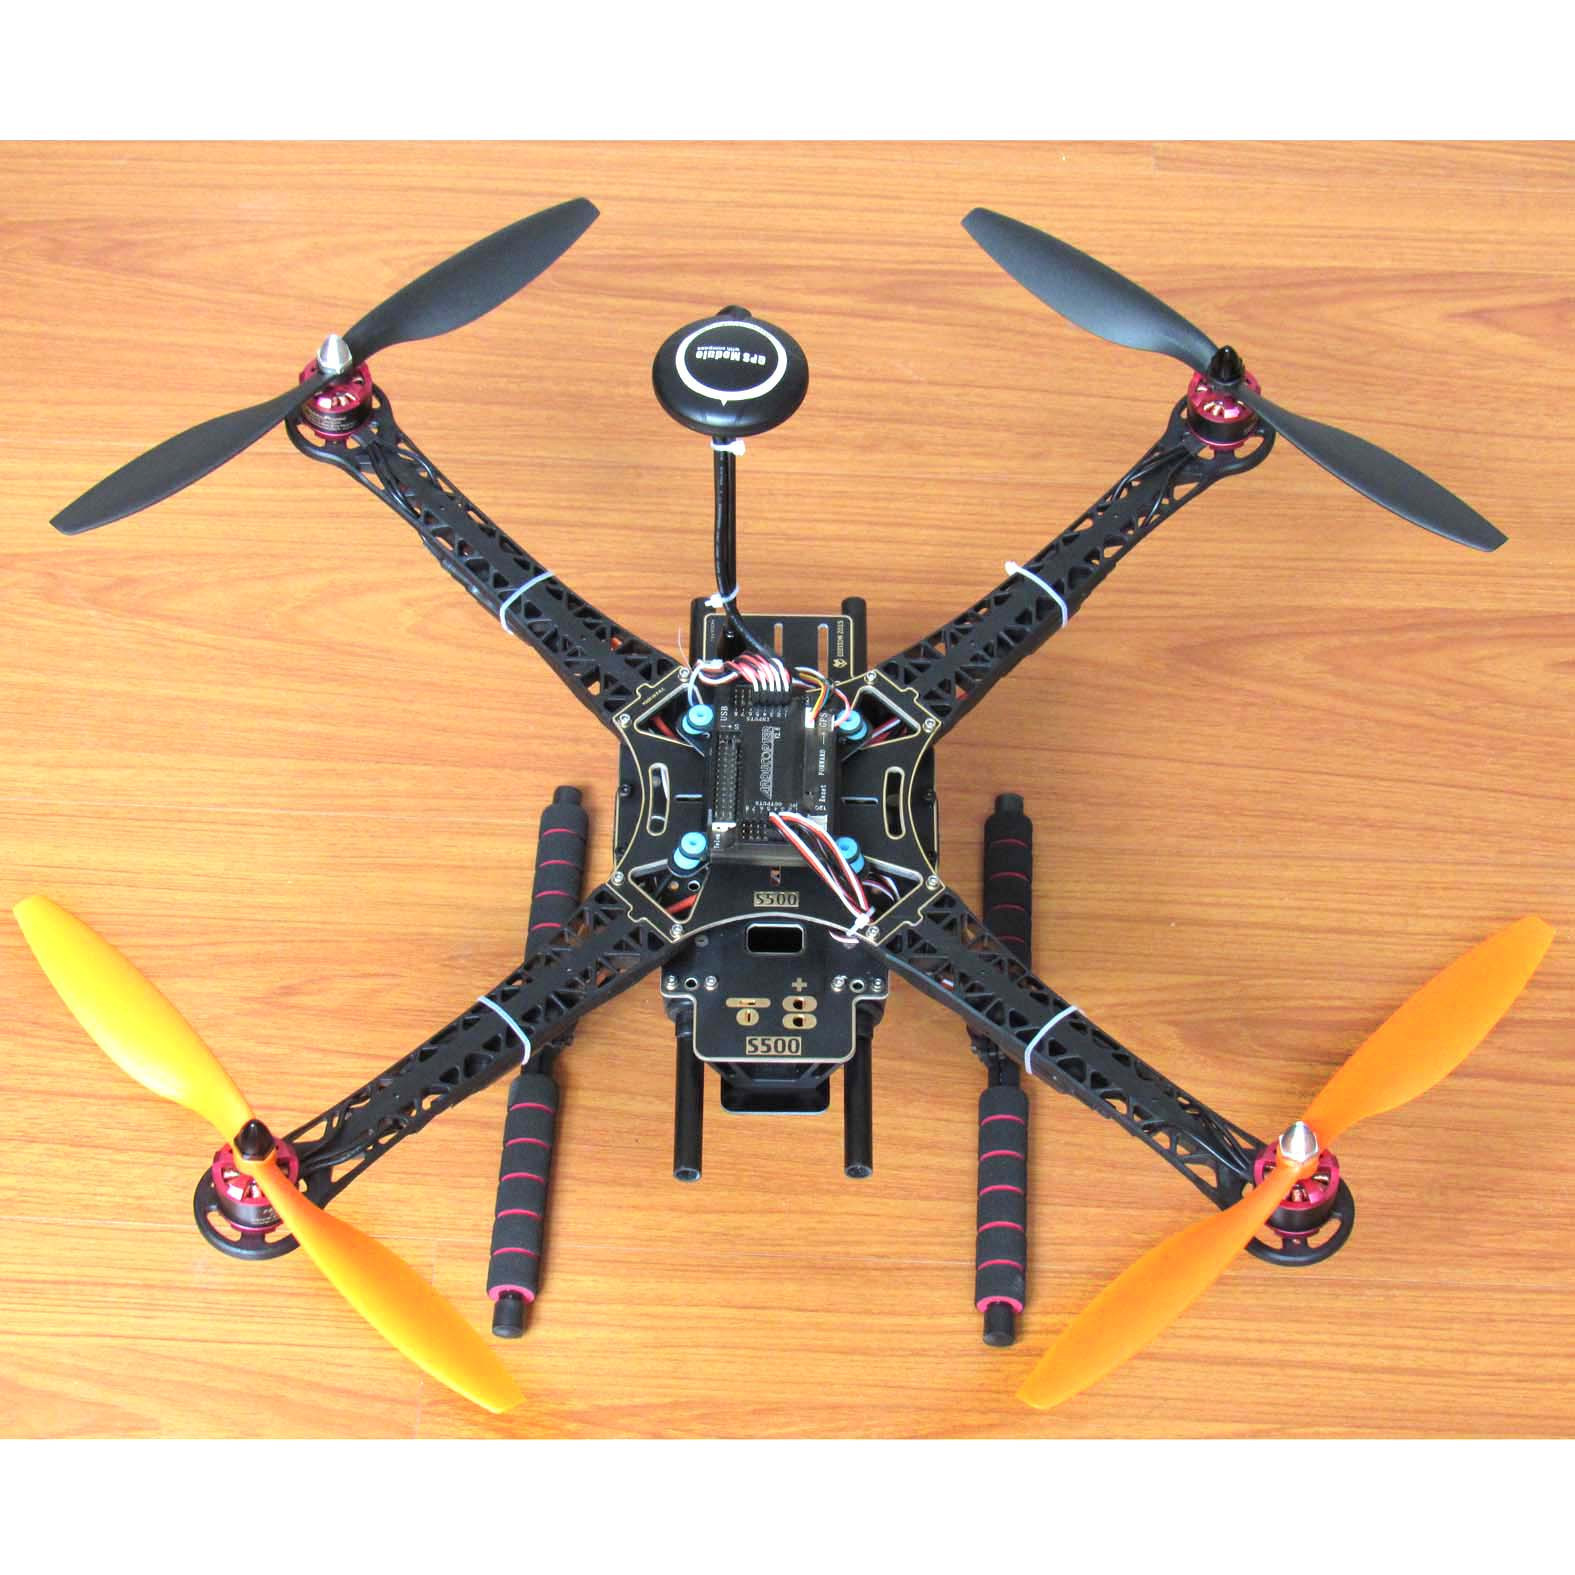 Best ideas about Quadcopter DIY Kit . Save or Pin DIY S500 Quadcopter Kit APM2 8 FC GPS 2212 920KV Brushless Now.